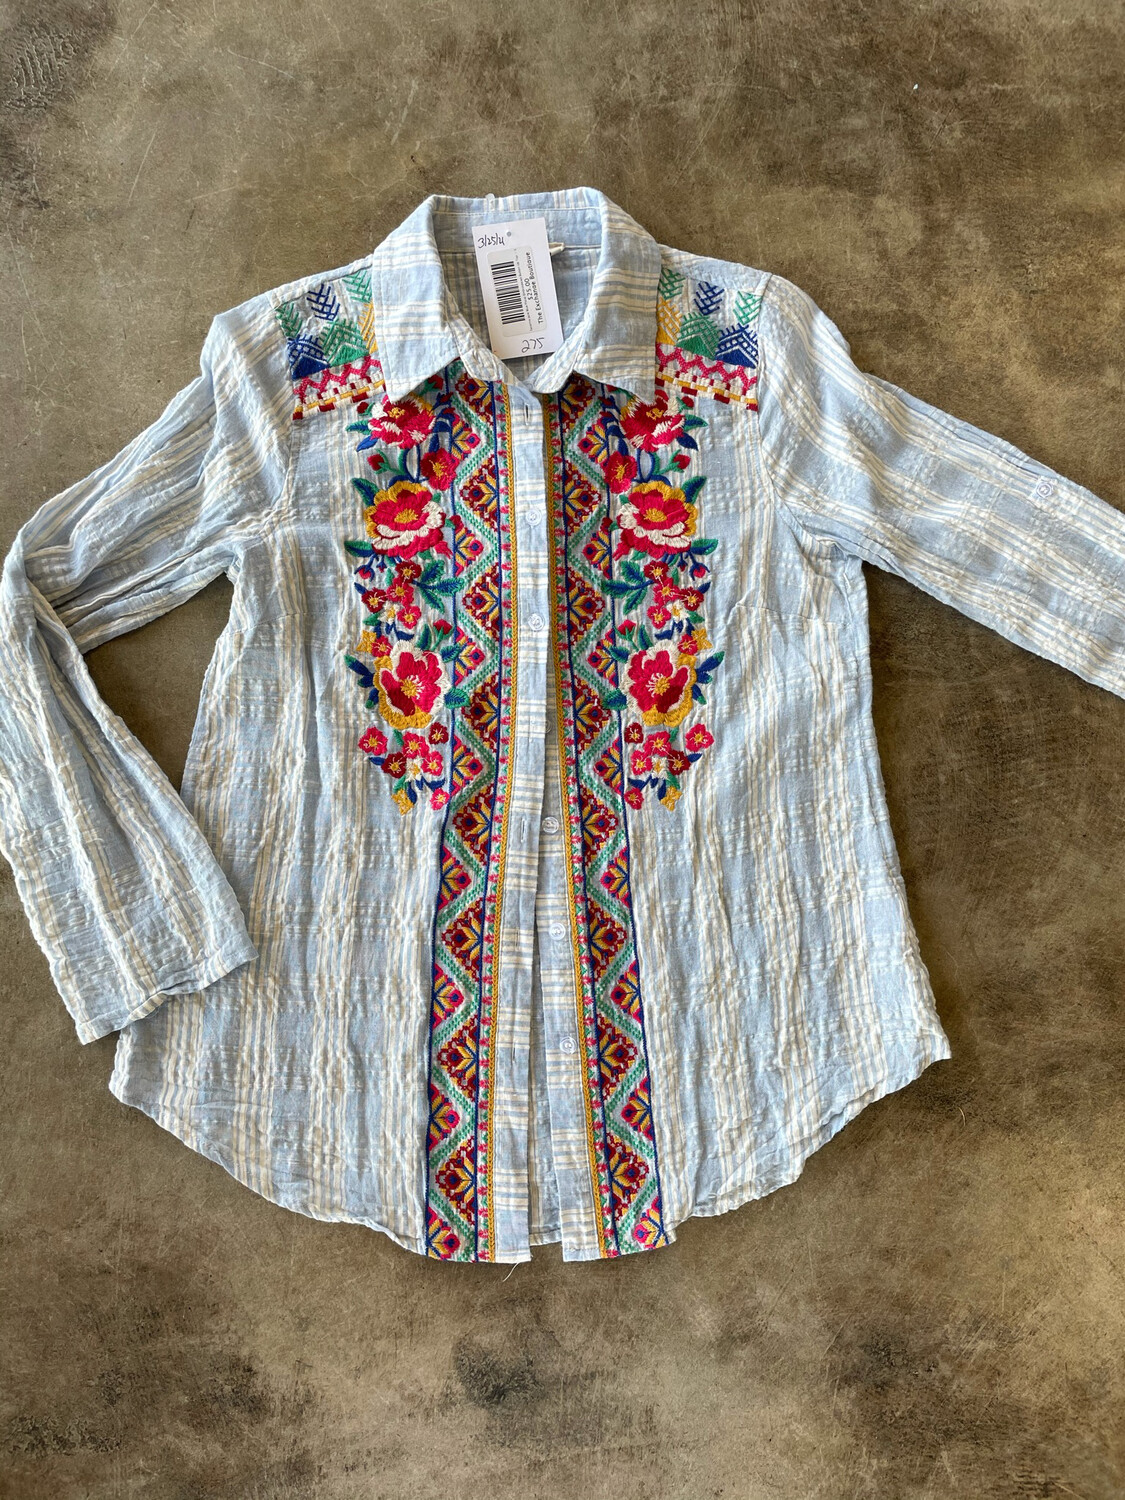 Savanna Jane Blue Floral Embroidered Button Up Top  - S